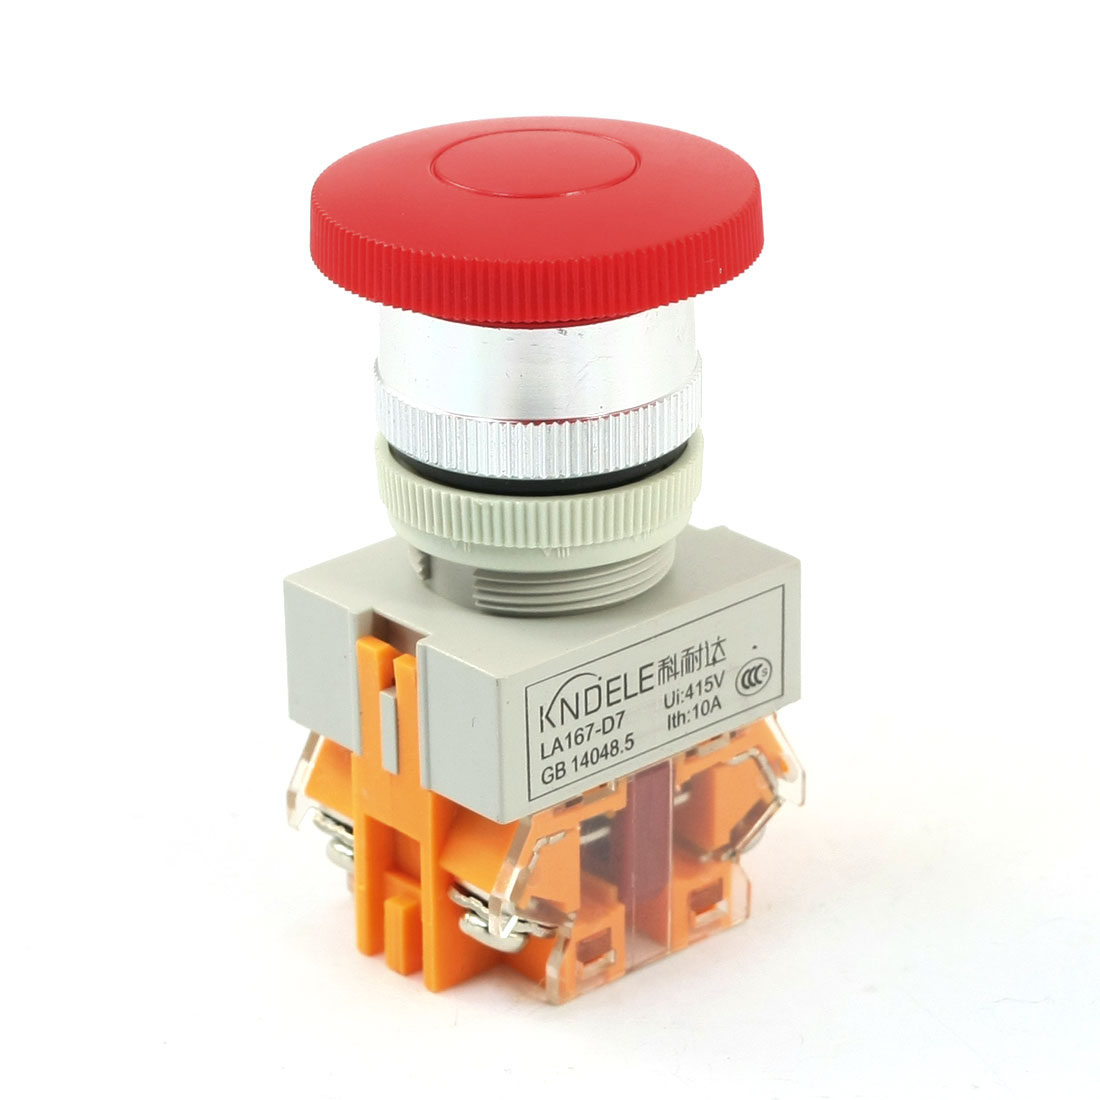 DPST Momentary 415V Ui 10A Ith Red Mushroom Head Pushbutton Switch